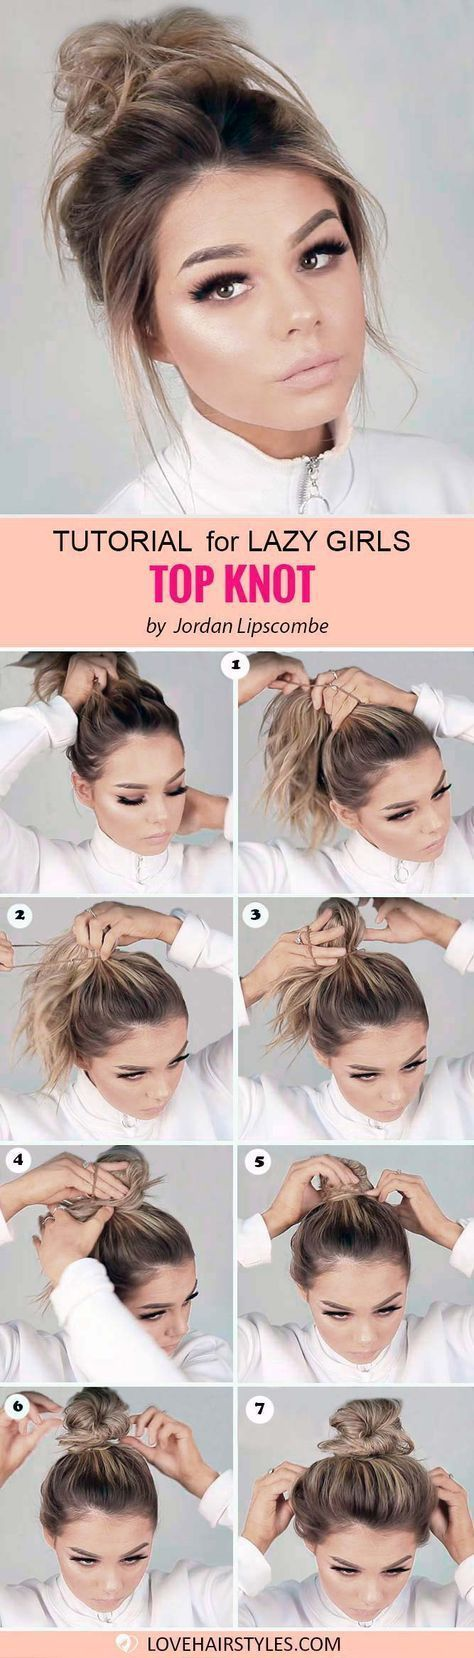 21 Super Simple Hairstyles for 2019 – Simple Hairstyles # #Hairstyle